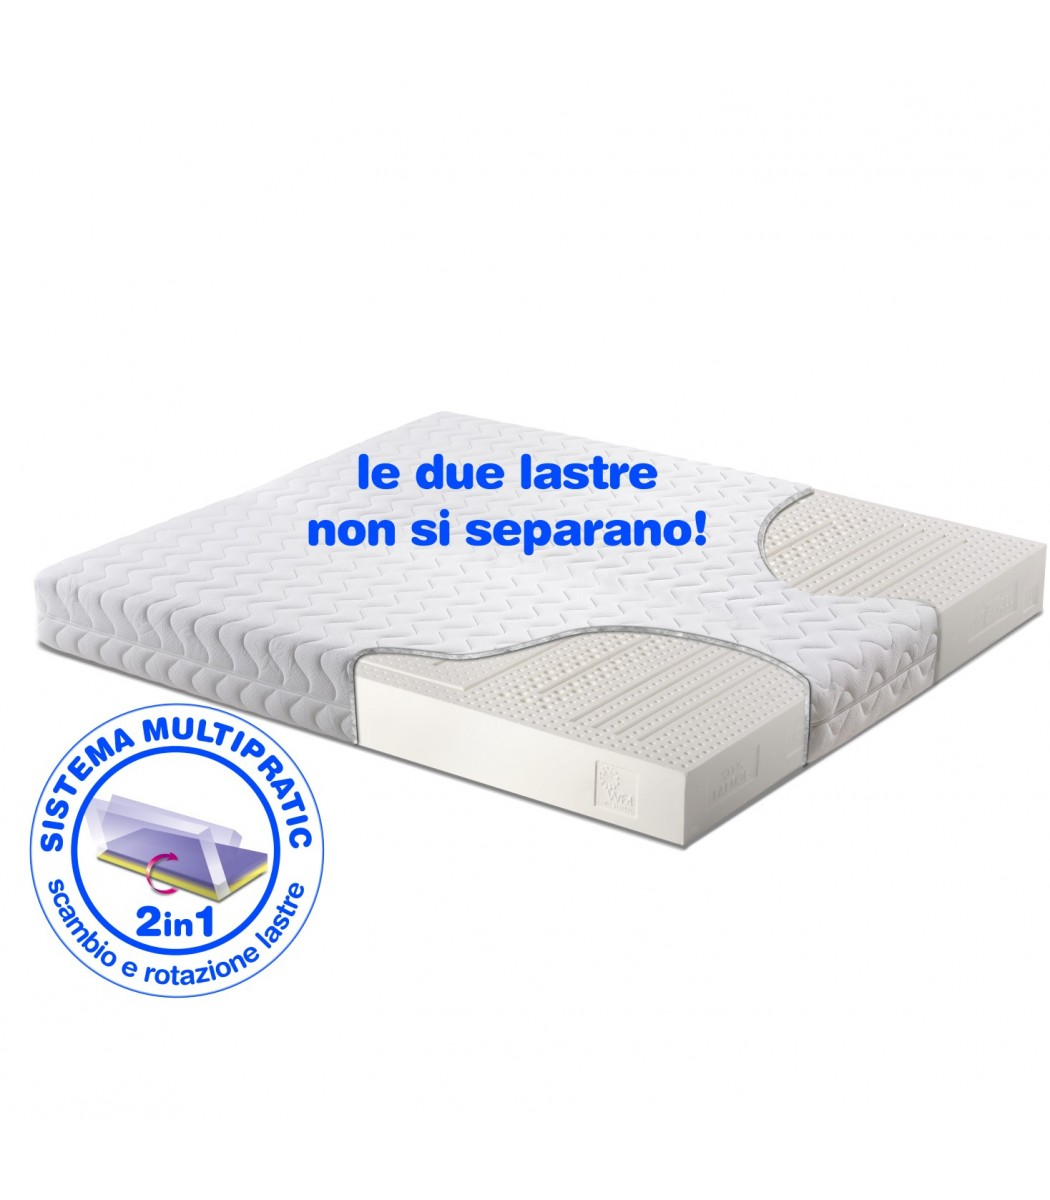 Eminflex Materassi In Lattice Prezzo. Renova Materasso Ortopedico In Memory Foam A Zone With ...